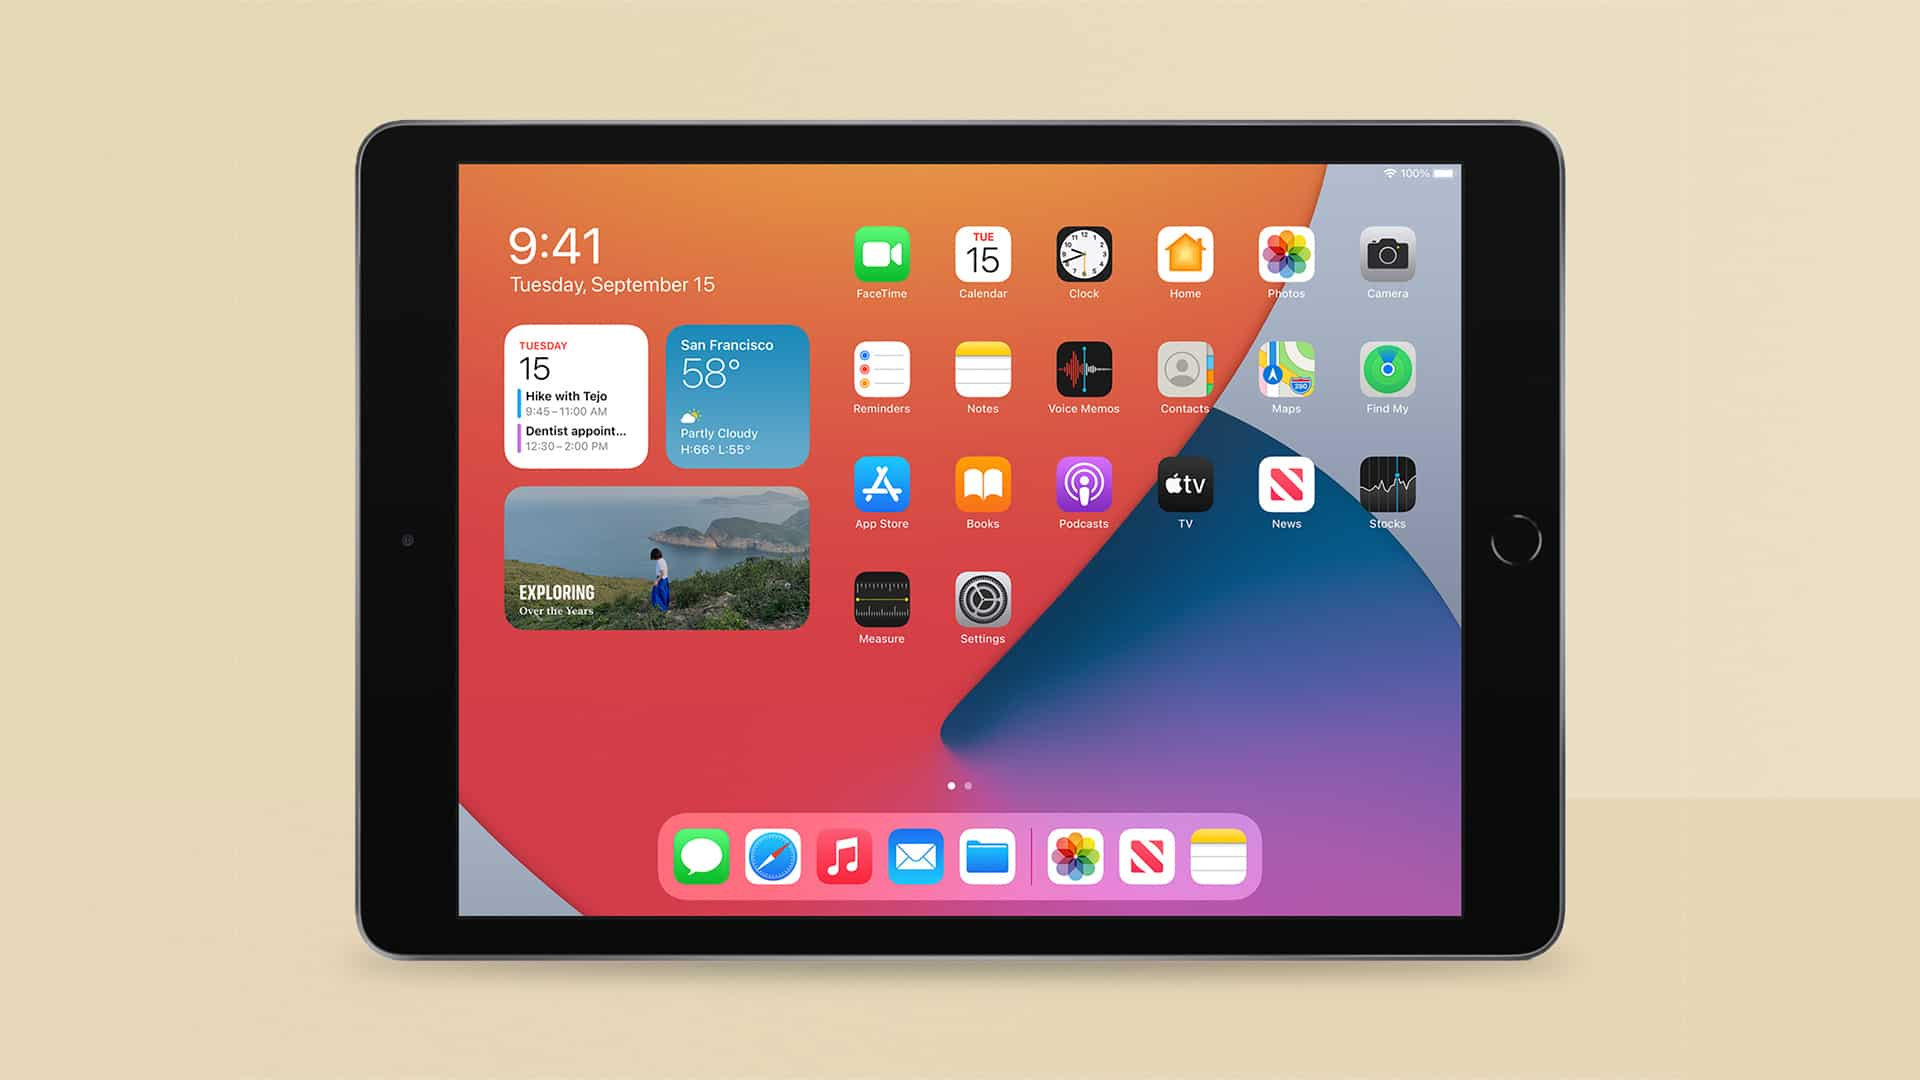 New thinner and faster iPad (aimed at students) to release soon: Bloomberg's Mark Gurman